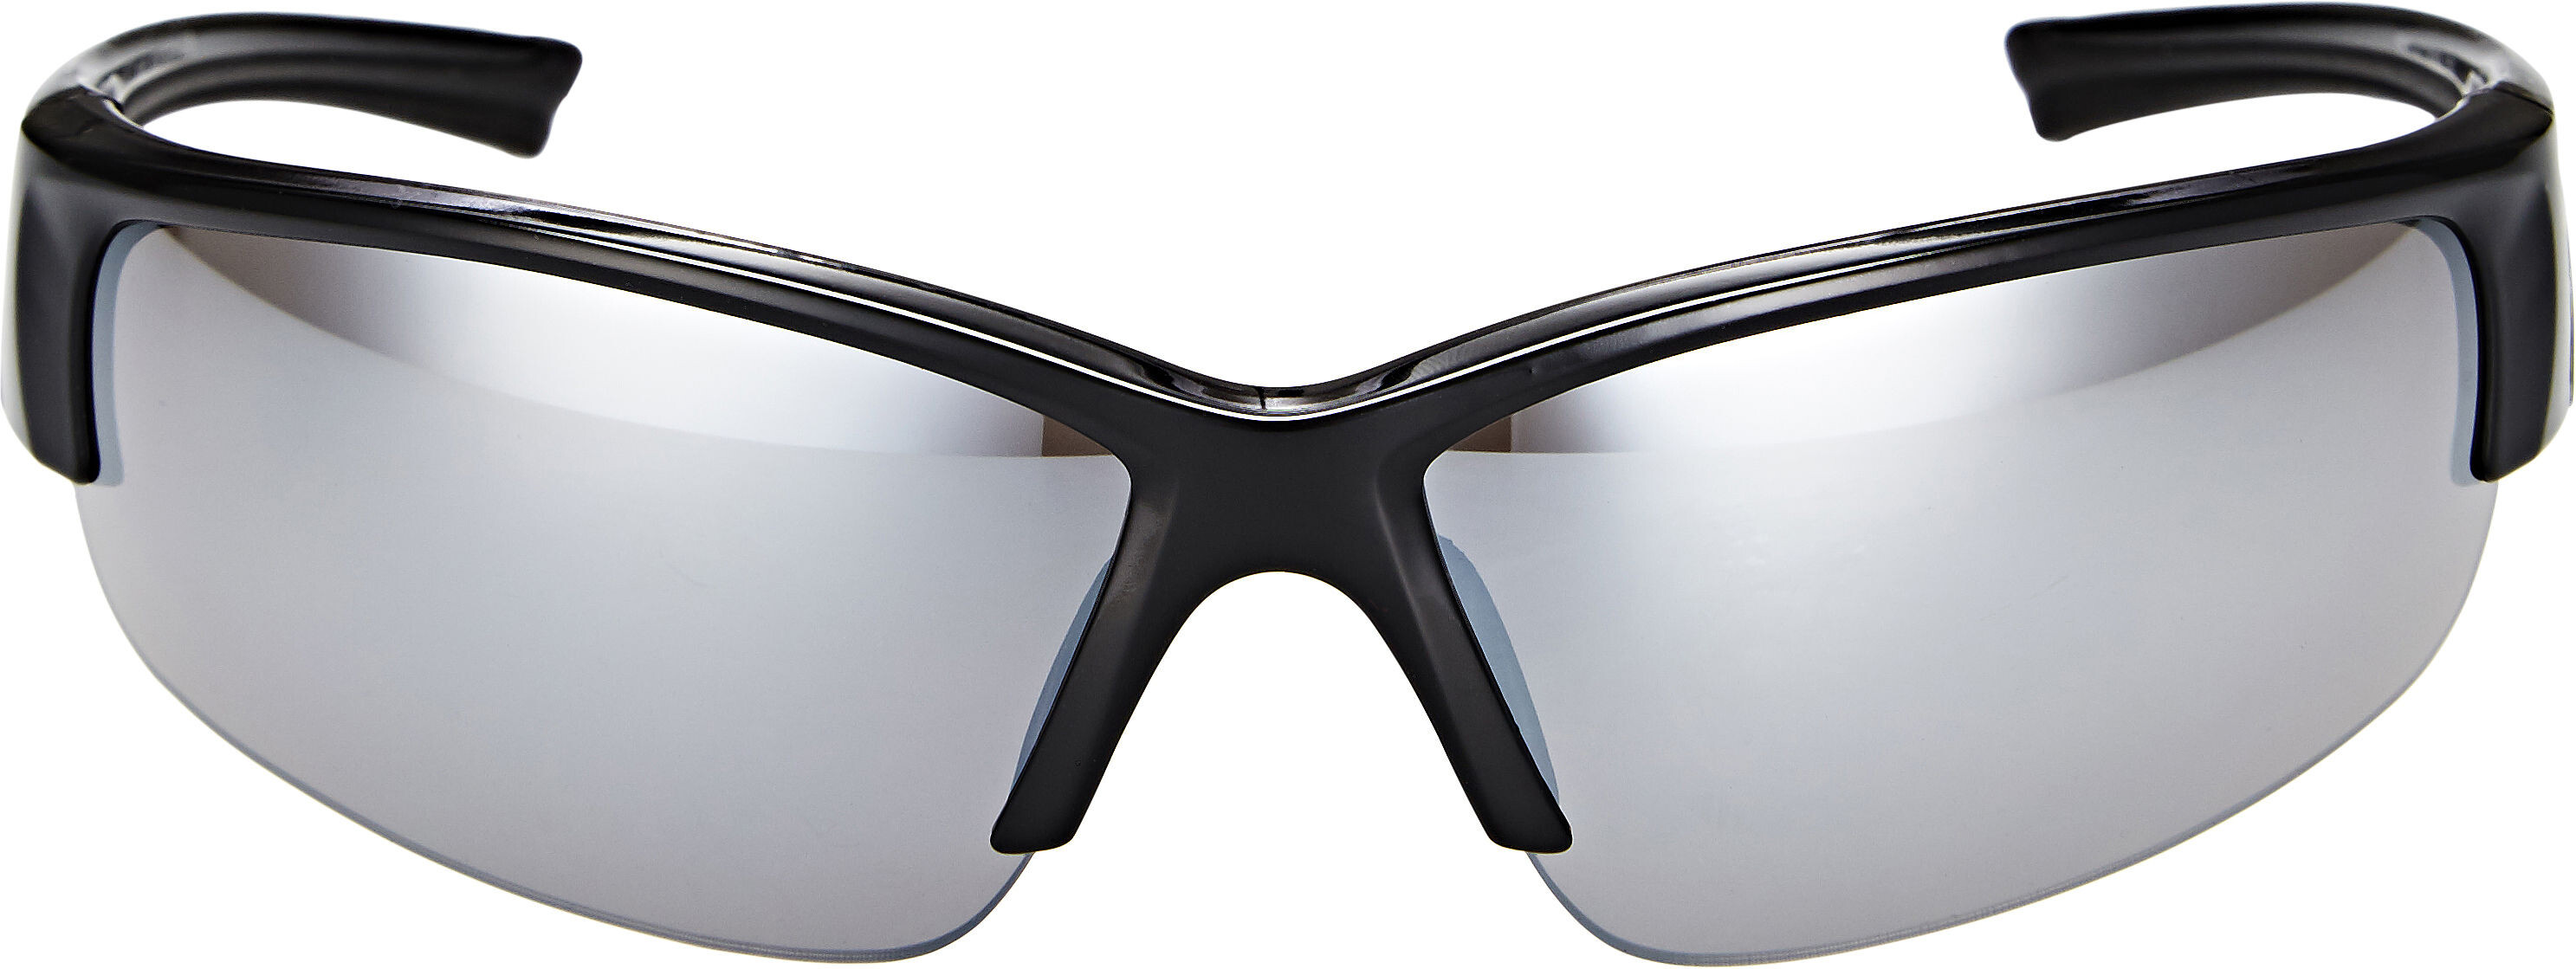 a38da7b2ee UVEX sportstyle 215 Bike Glasses black at Bikester.co.uk